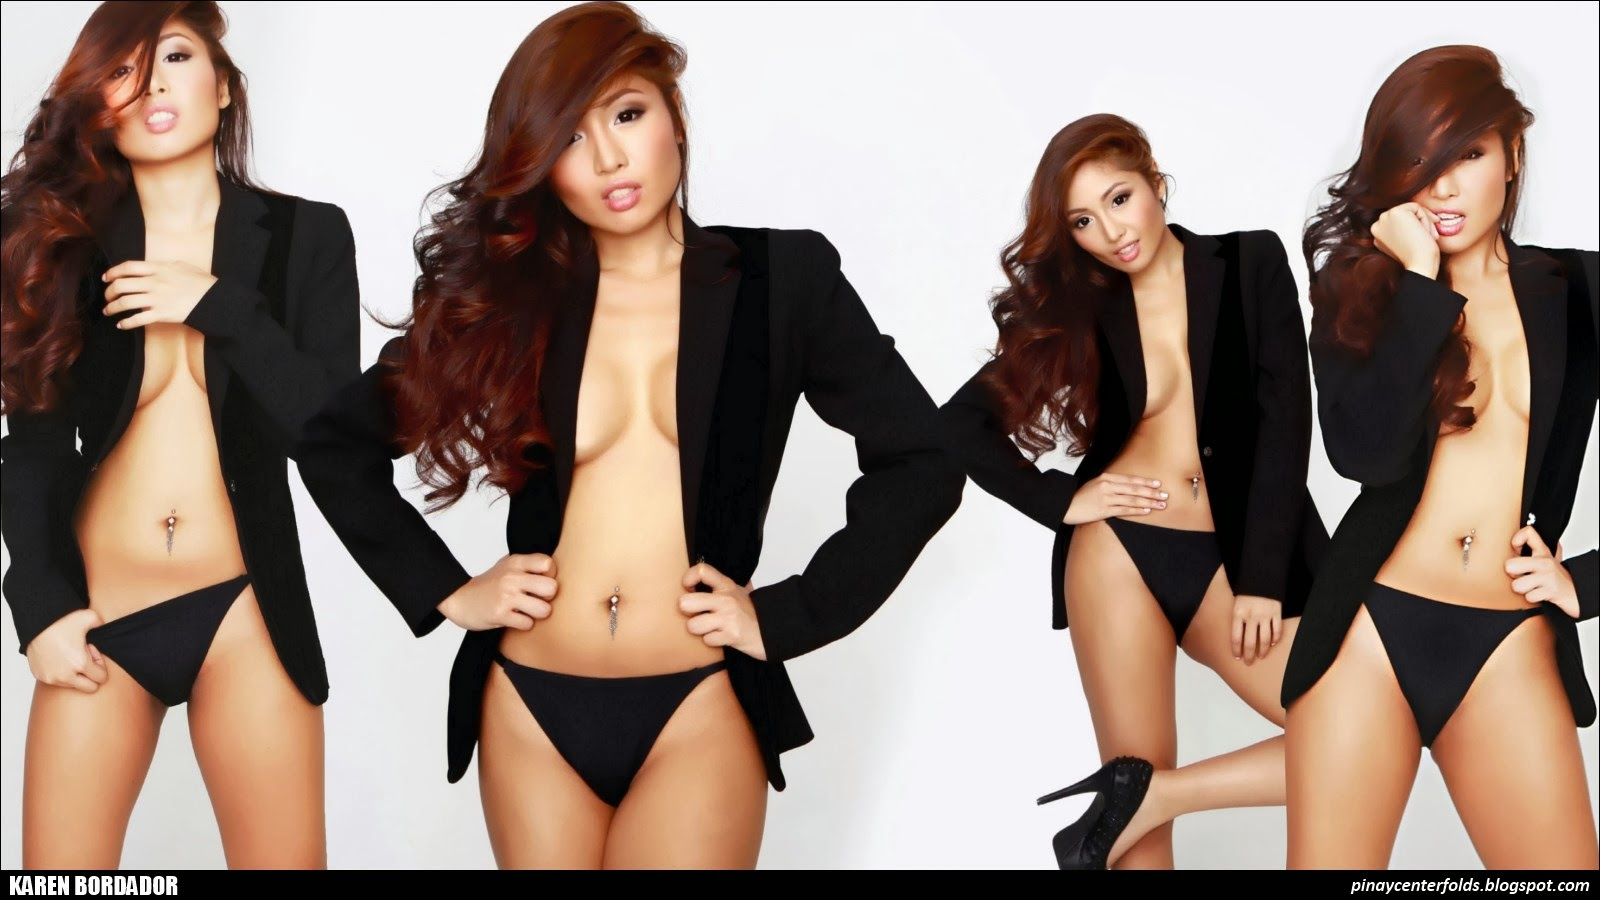 Karen Bordador In FHM Ladies Confessions 1